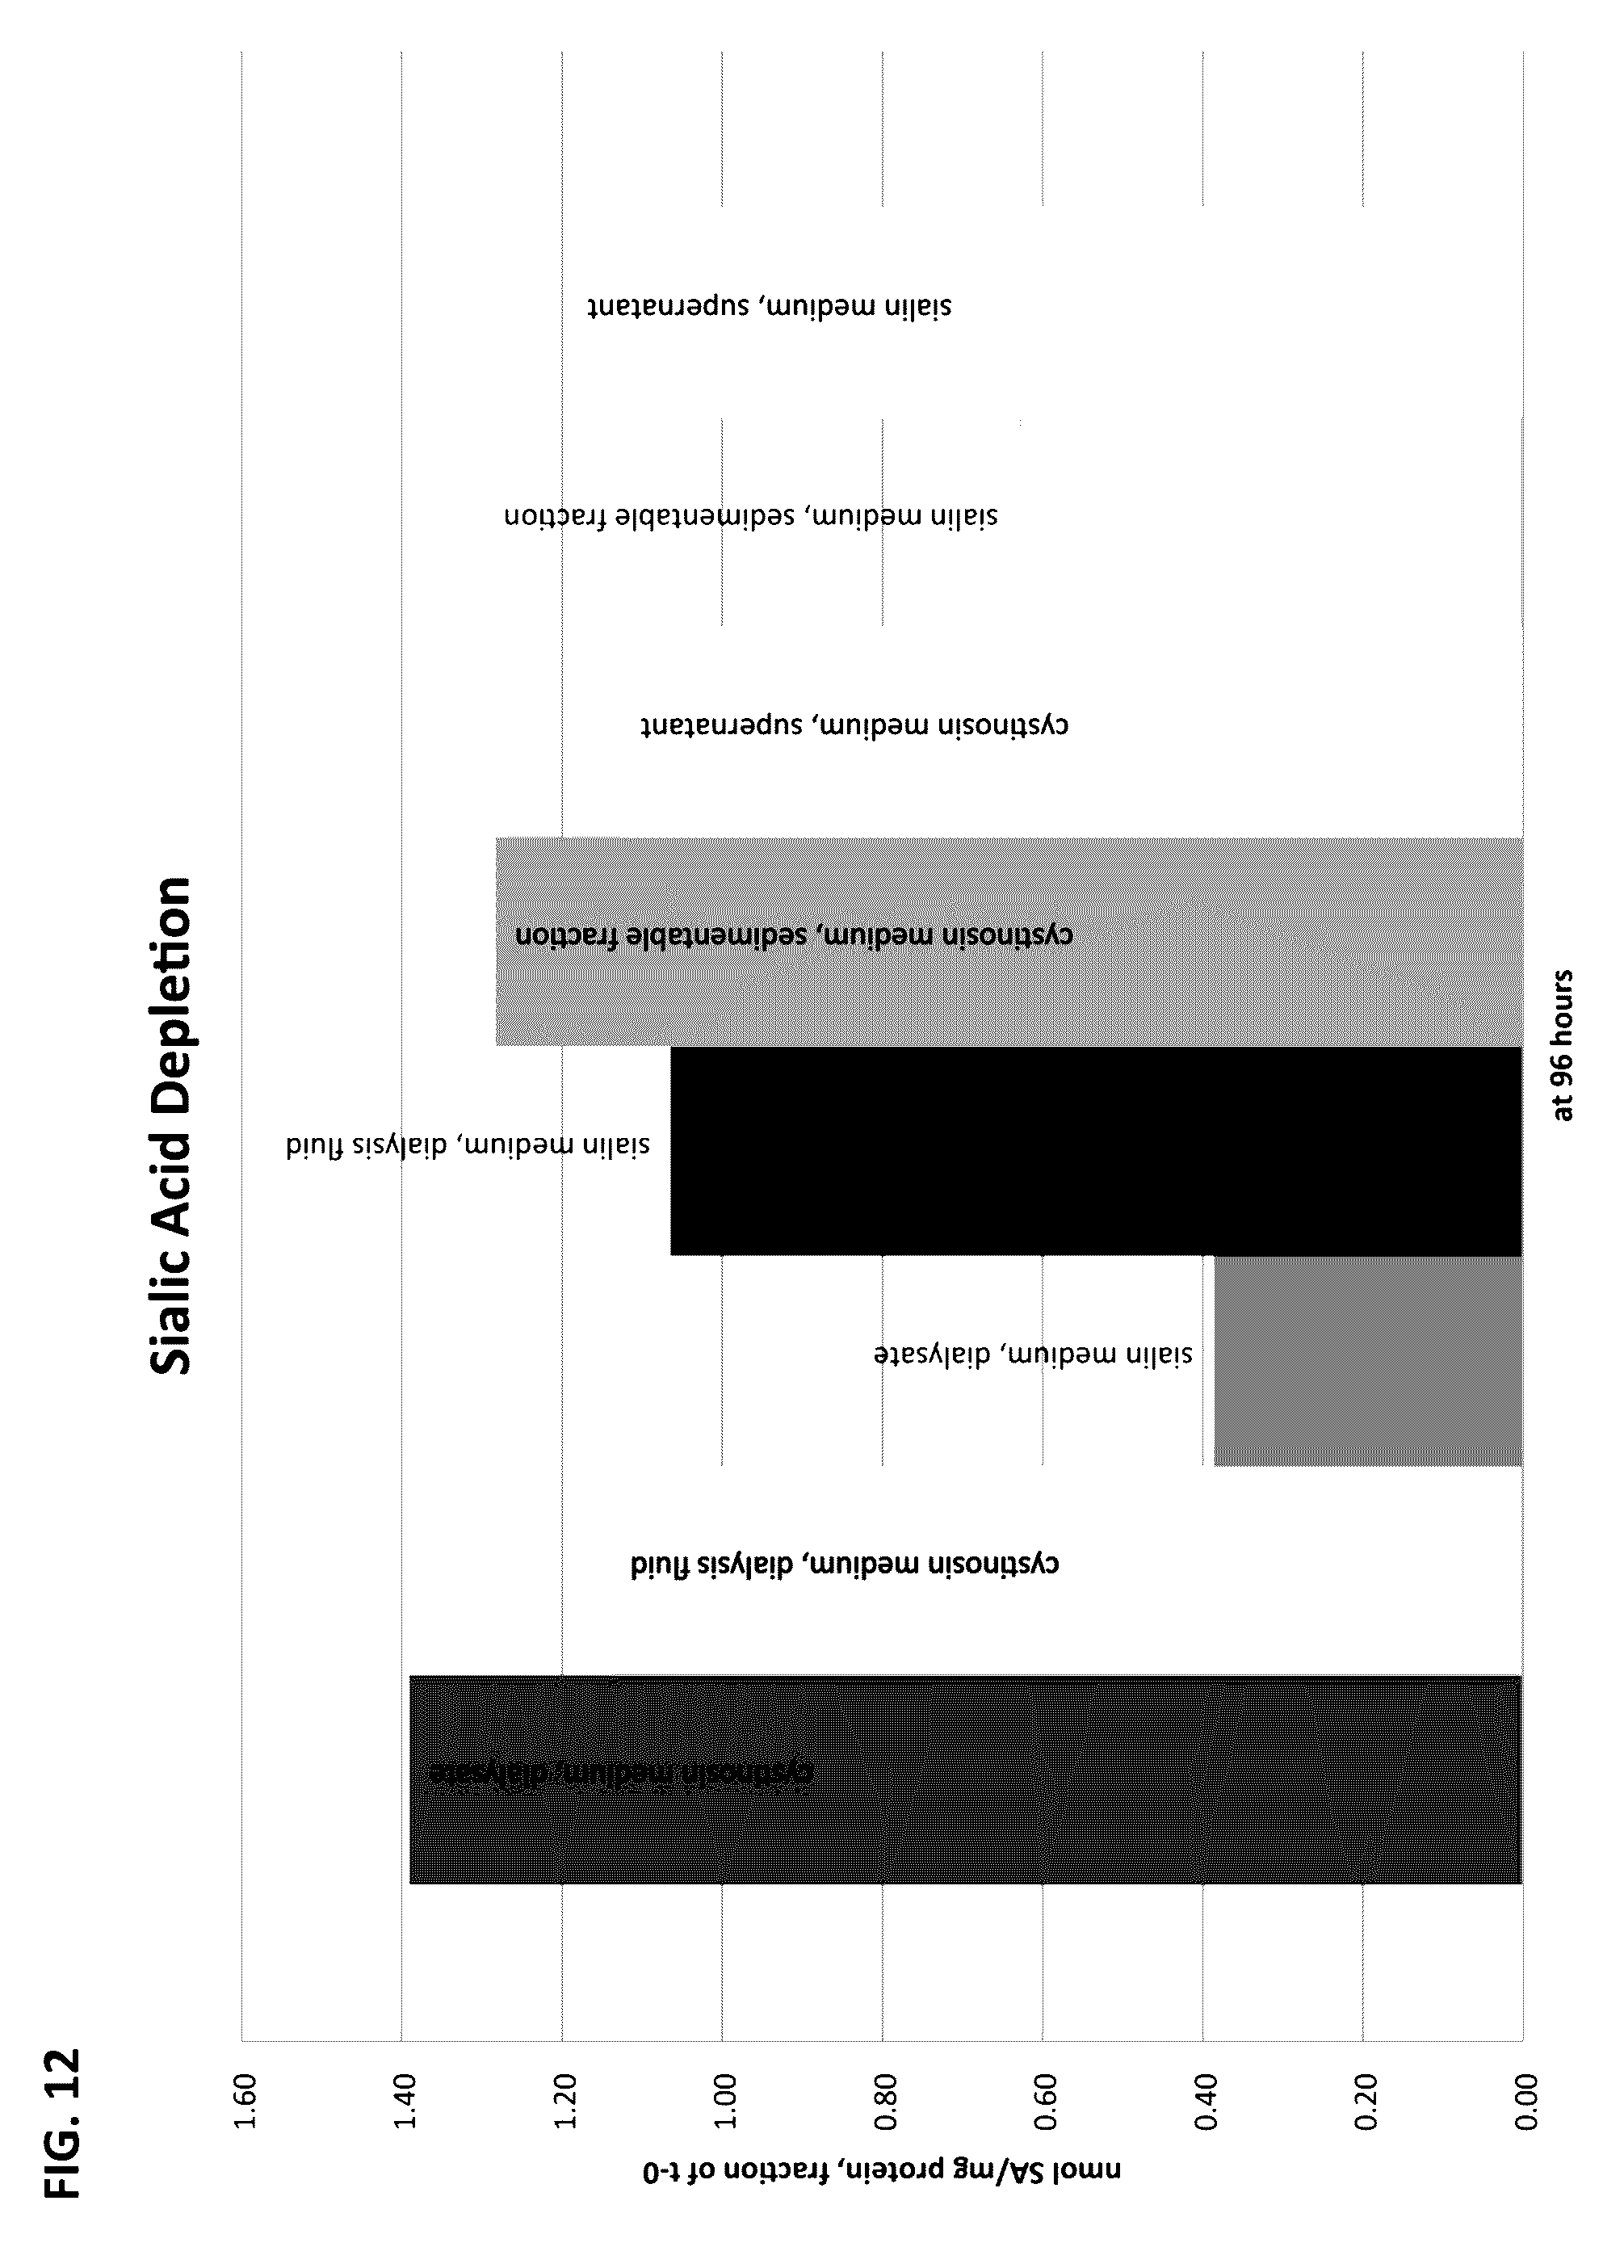 US9566314B2 - Extracellular vesicles comprising recombinant